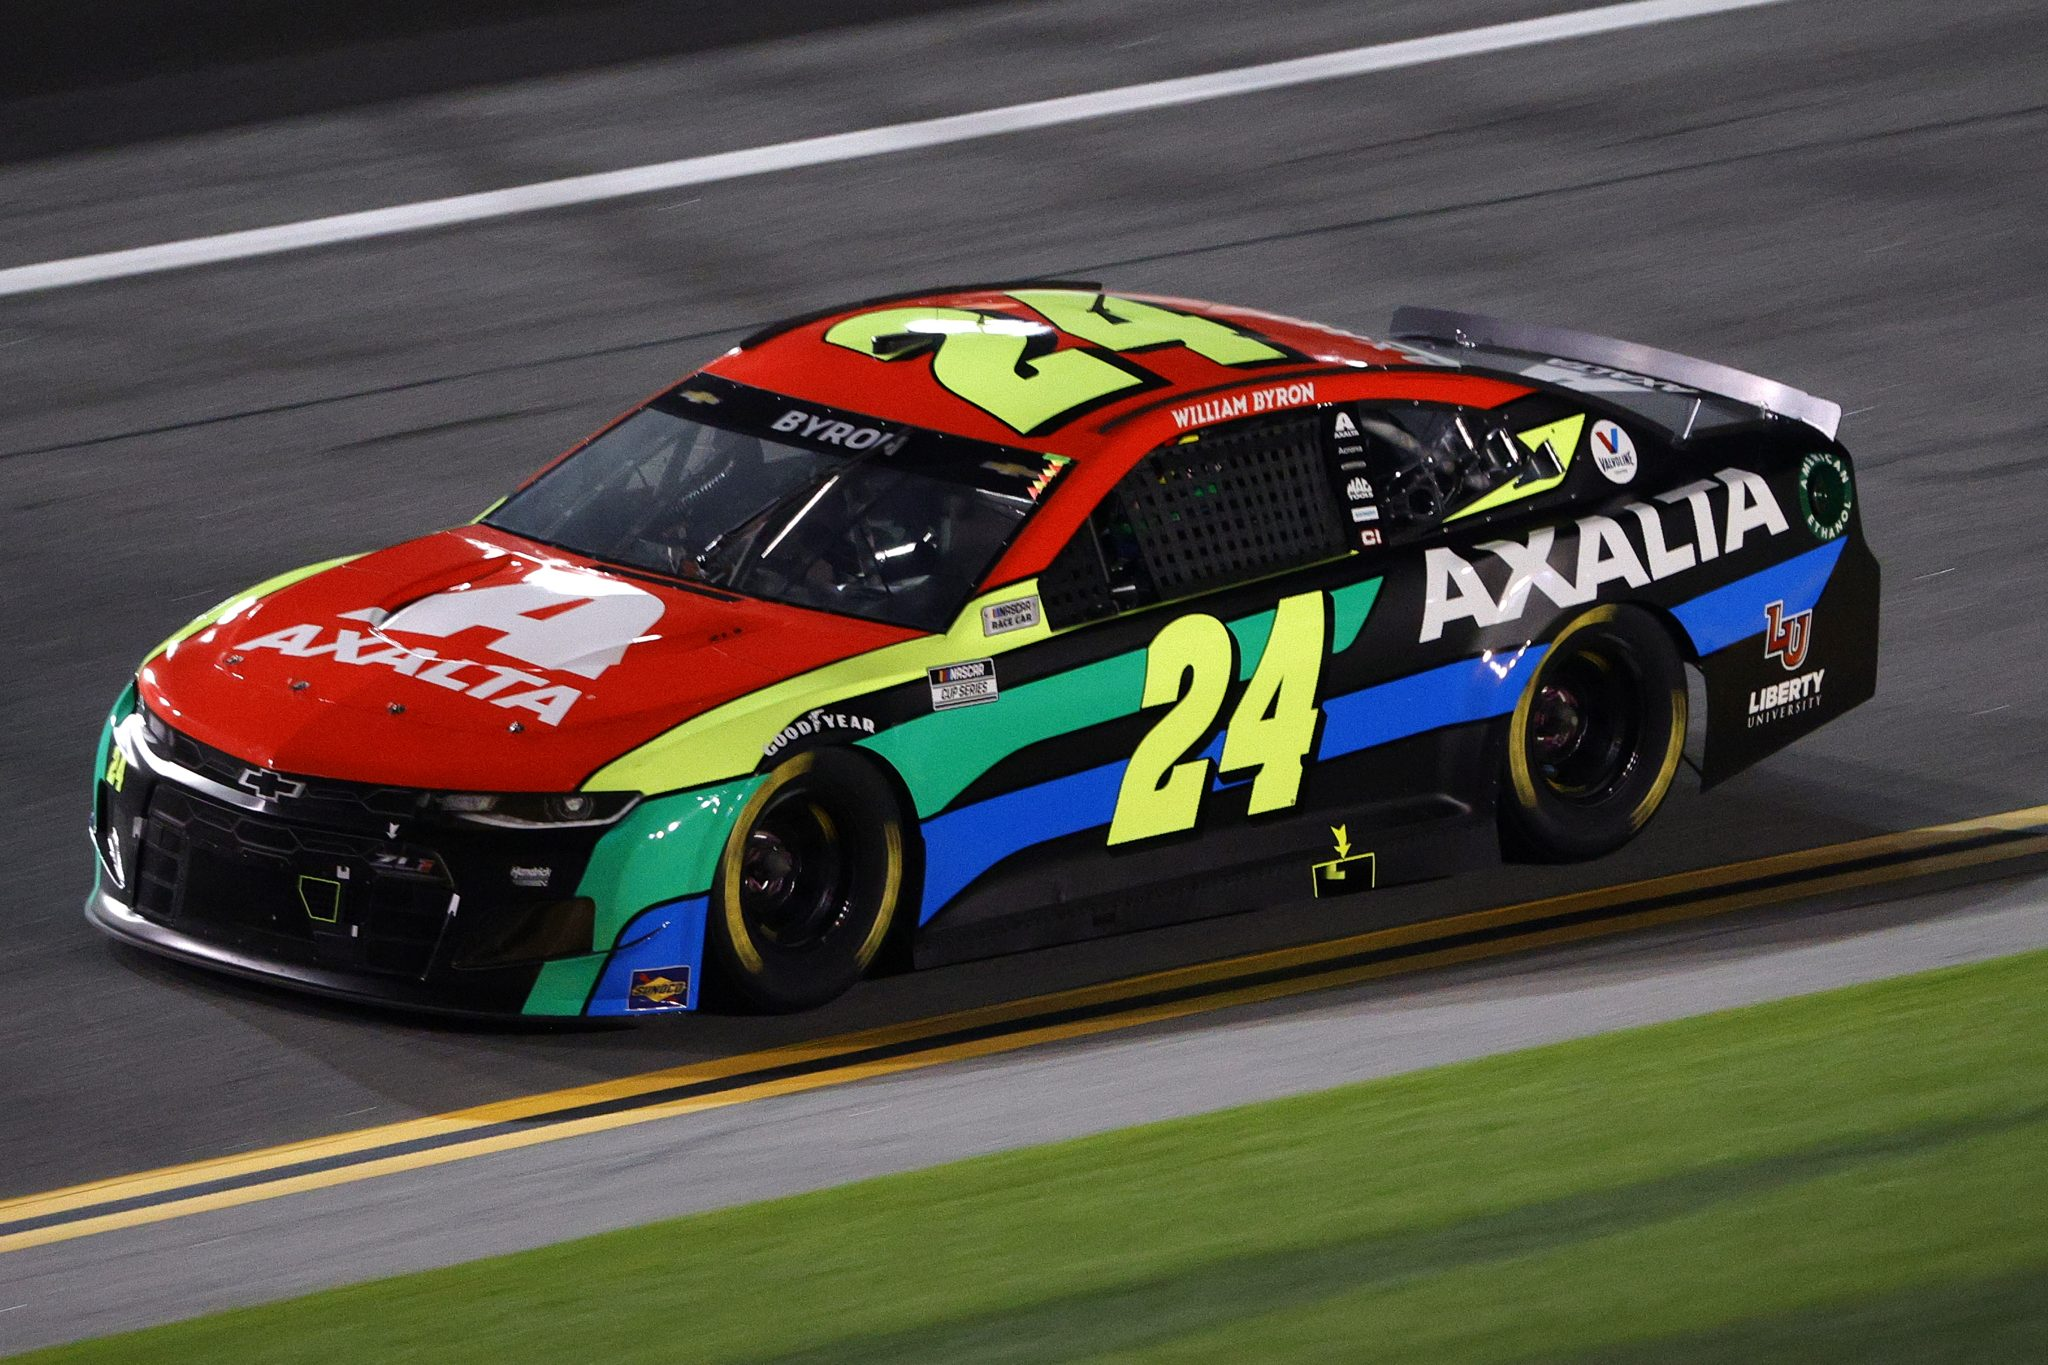 DAYTONA BEACH, FLORIDA - FEBRUARY 09: William Byron, driver of the #24 Axalta Chevrolet, drives during the NASCAR Cup Series Busch Clash at Daytona at Daytona International Speedway on February 09, 2021 in Daytona Beach, Florida. (Photo by Chris Graythen/Getty Images) | Getty Images